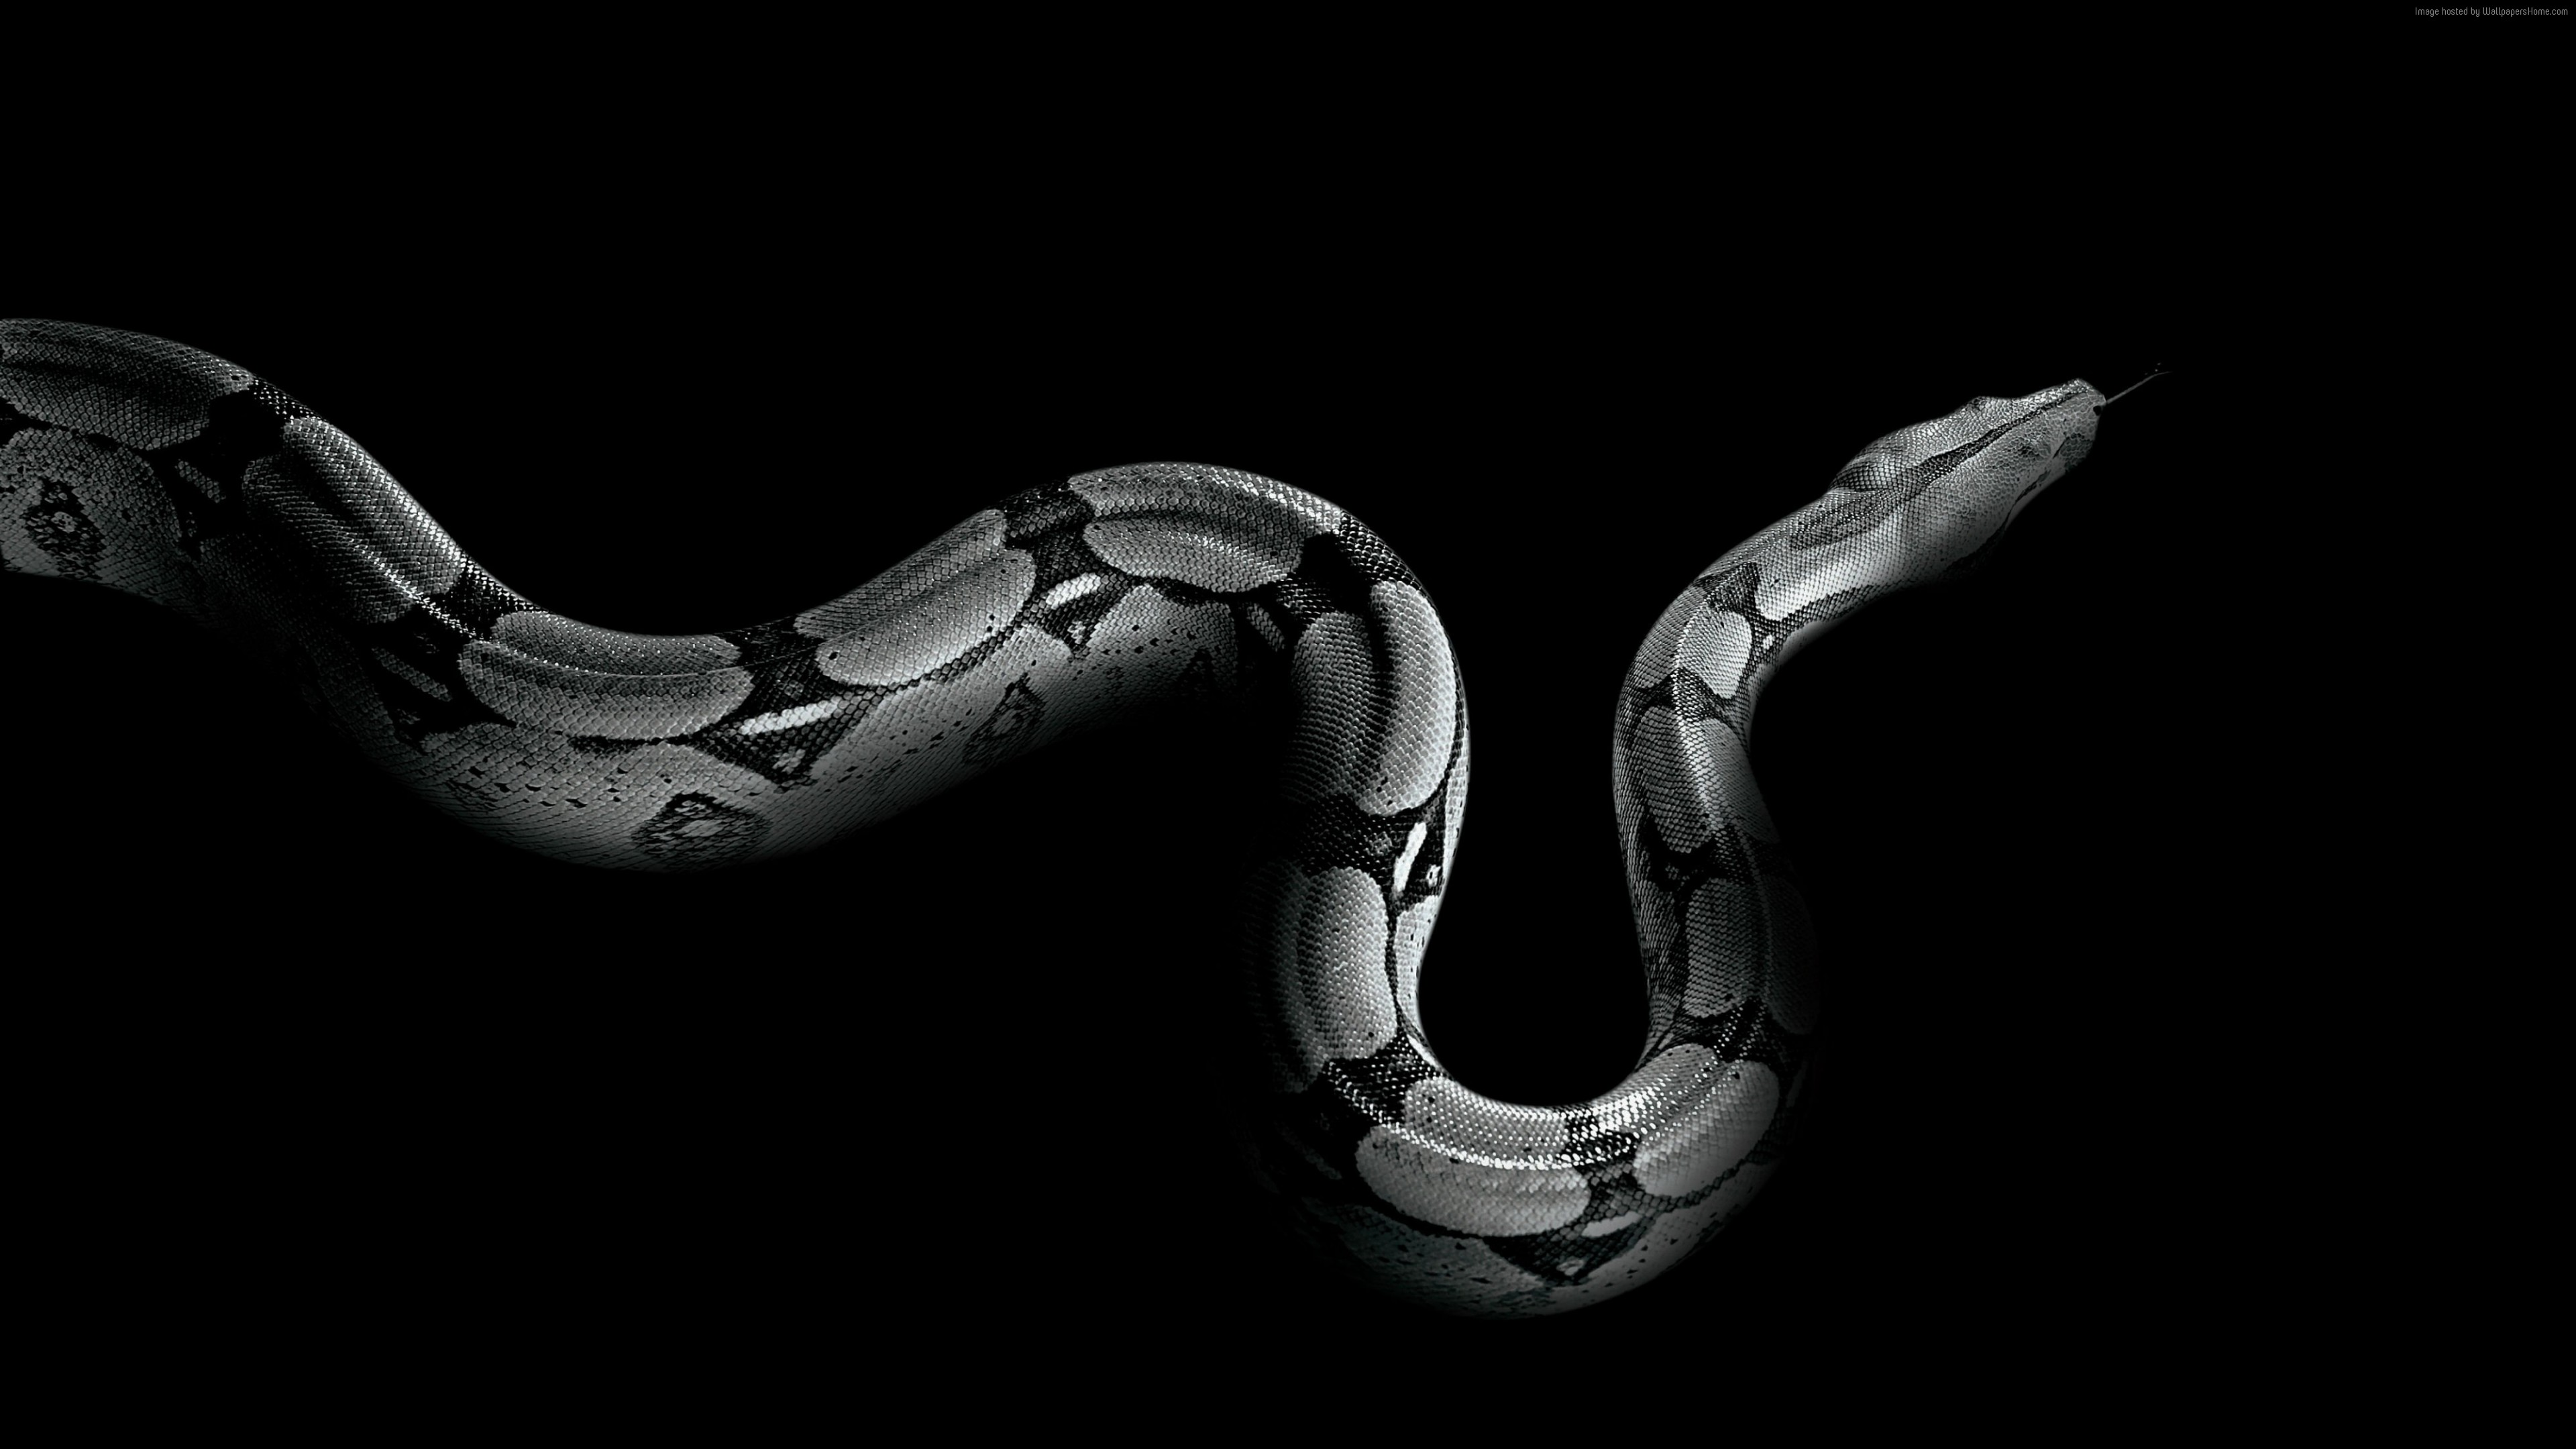 Wallpaper Python, snake, Animals